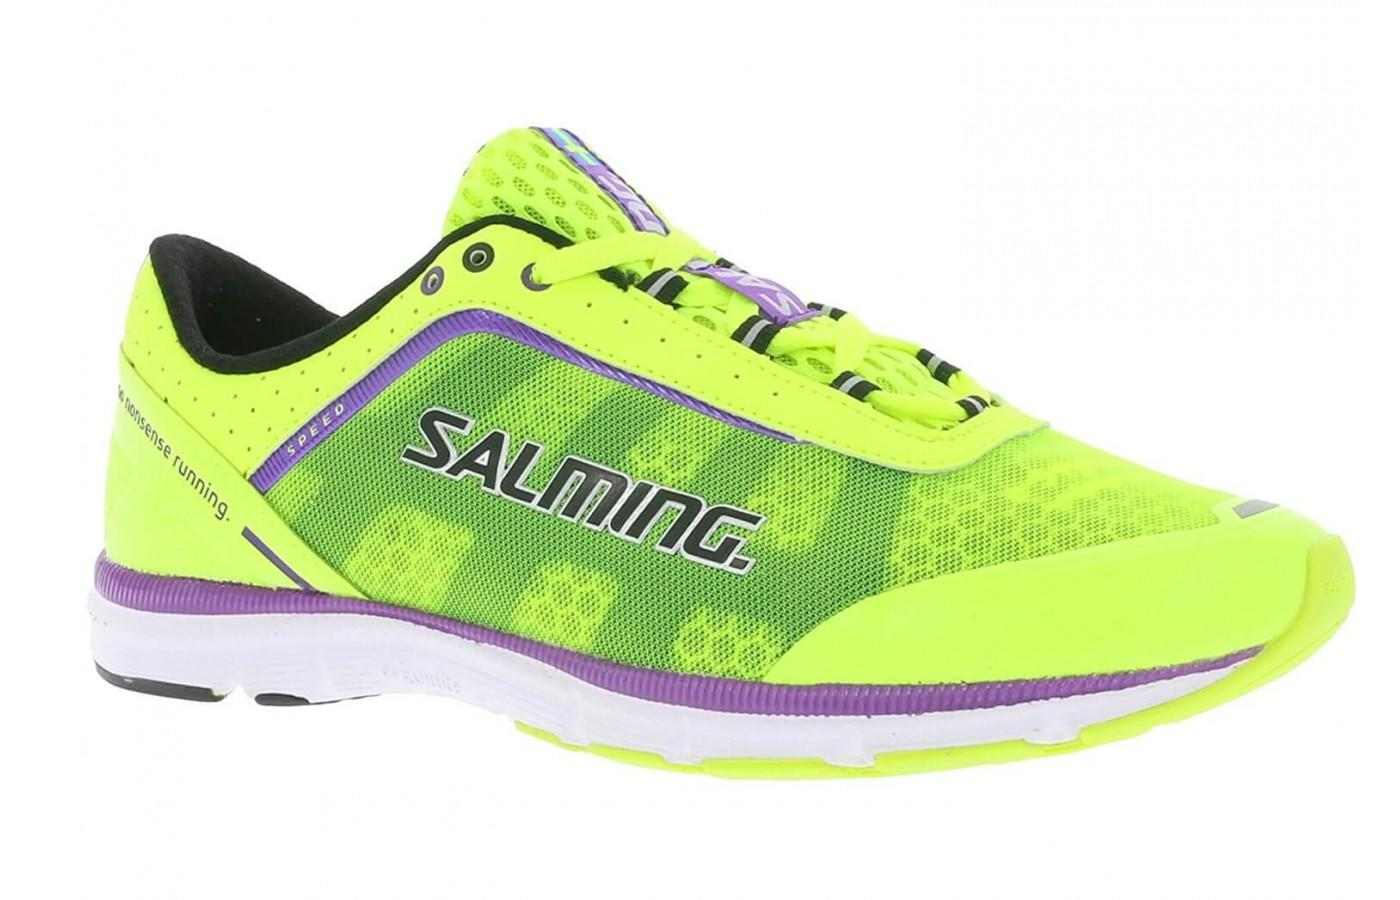 the Salming Speed shown from the front/side